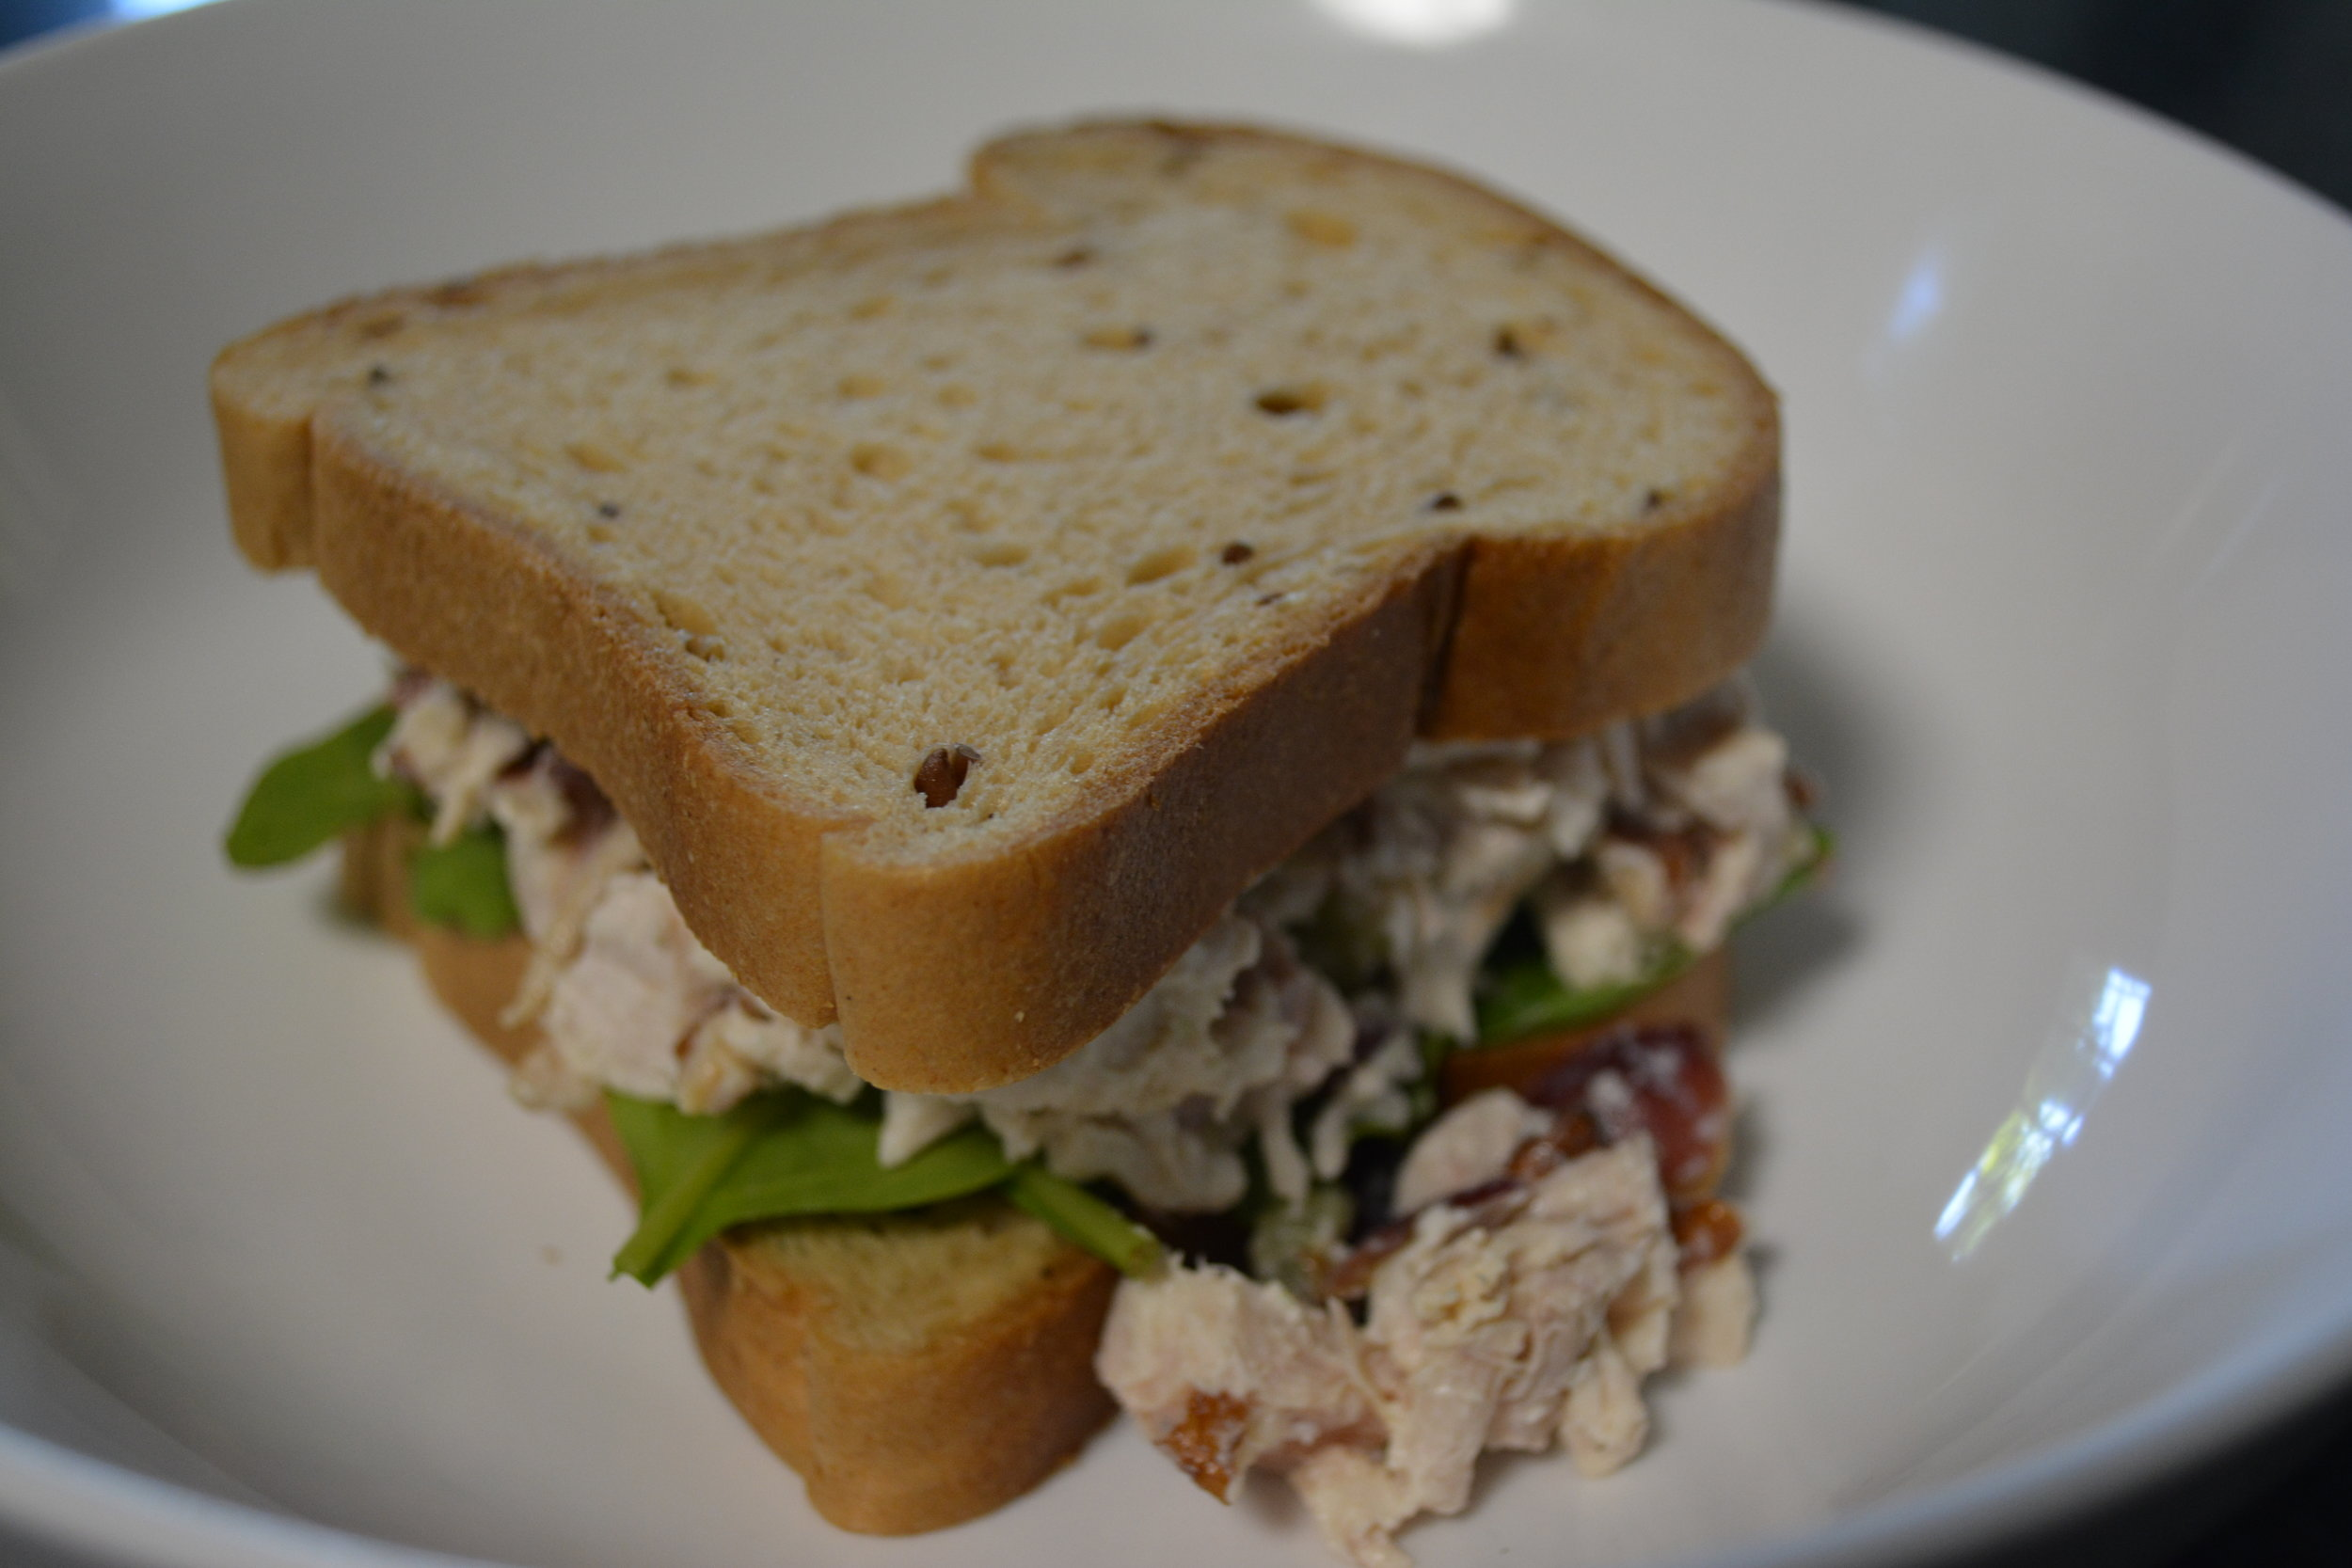 Chicken Salad with Toasted Pecan Pieces